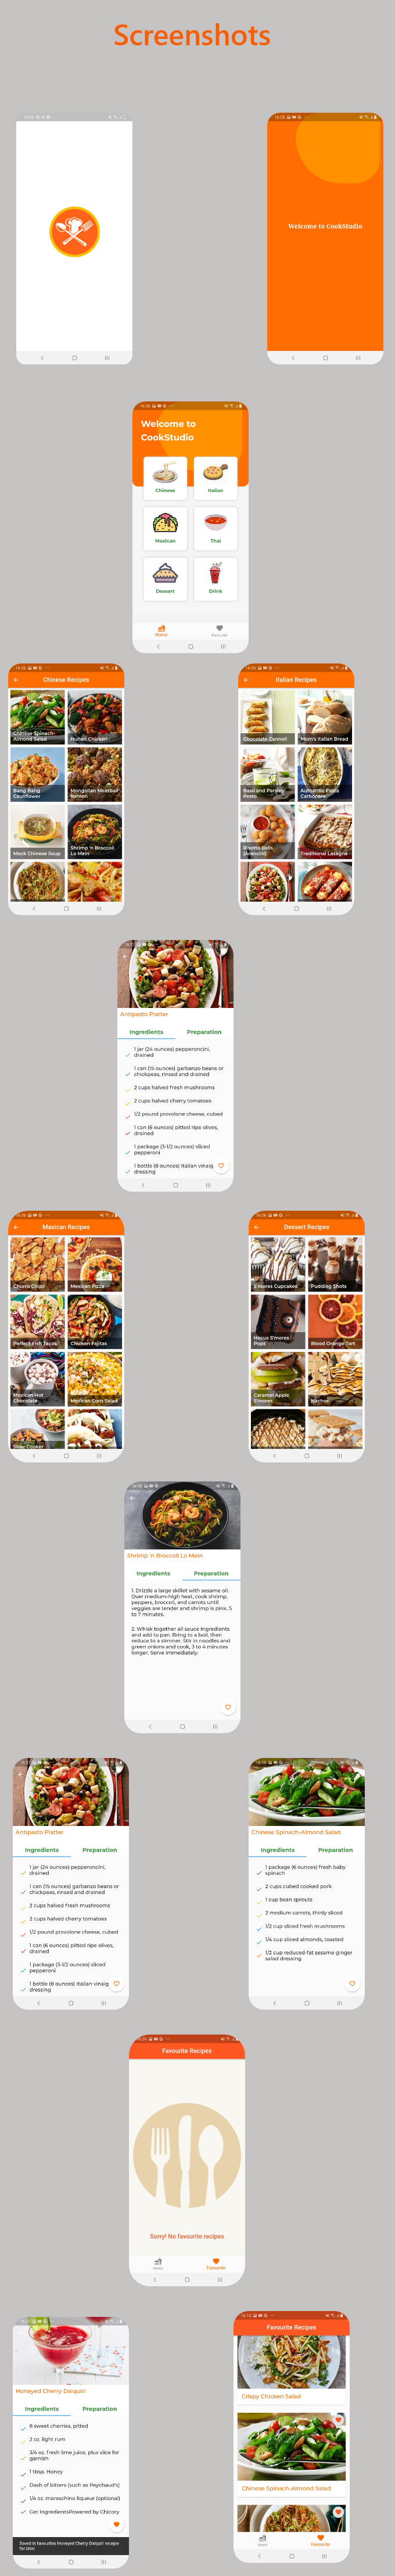 Cookstudio-Recipe App By Flutter With AdMOb - 1